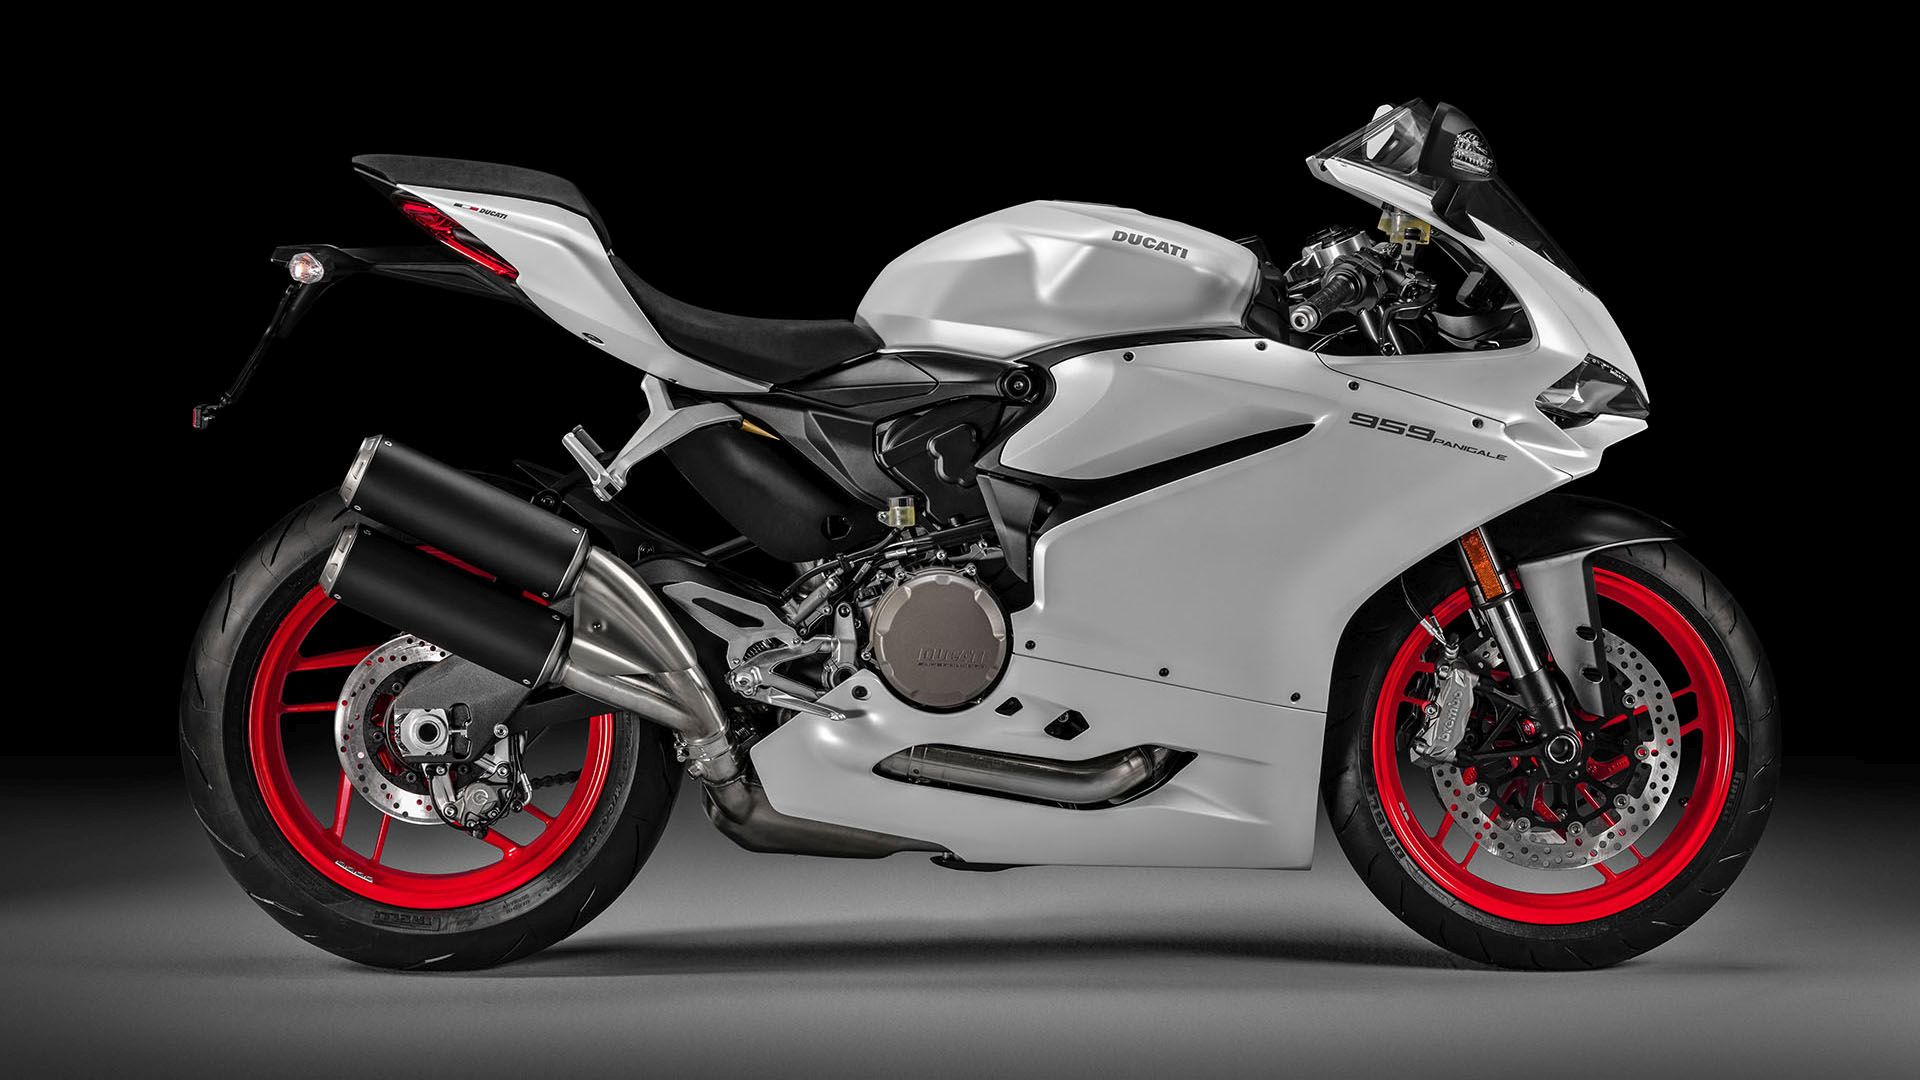 Ducati 959 Panigale ABS